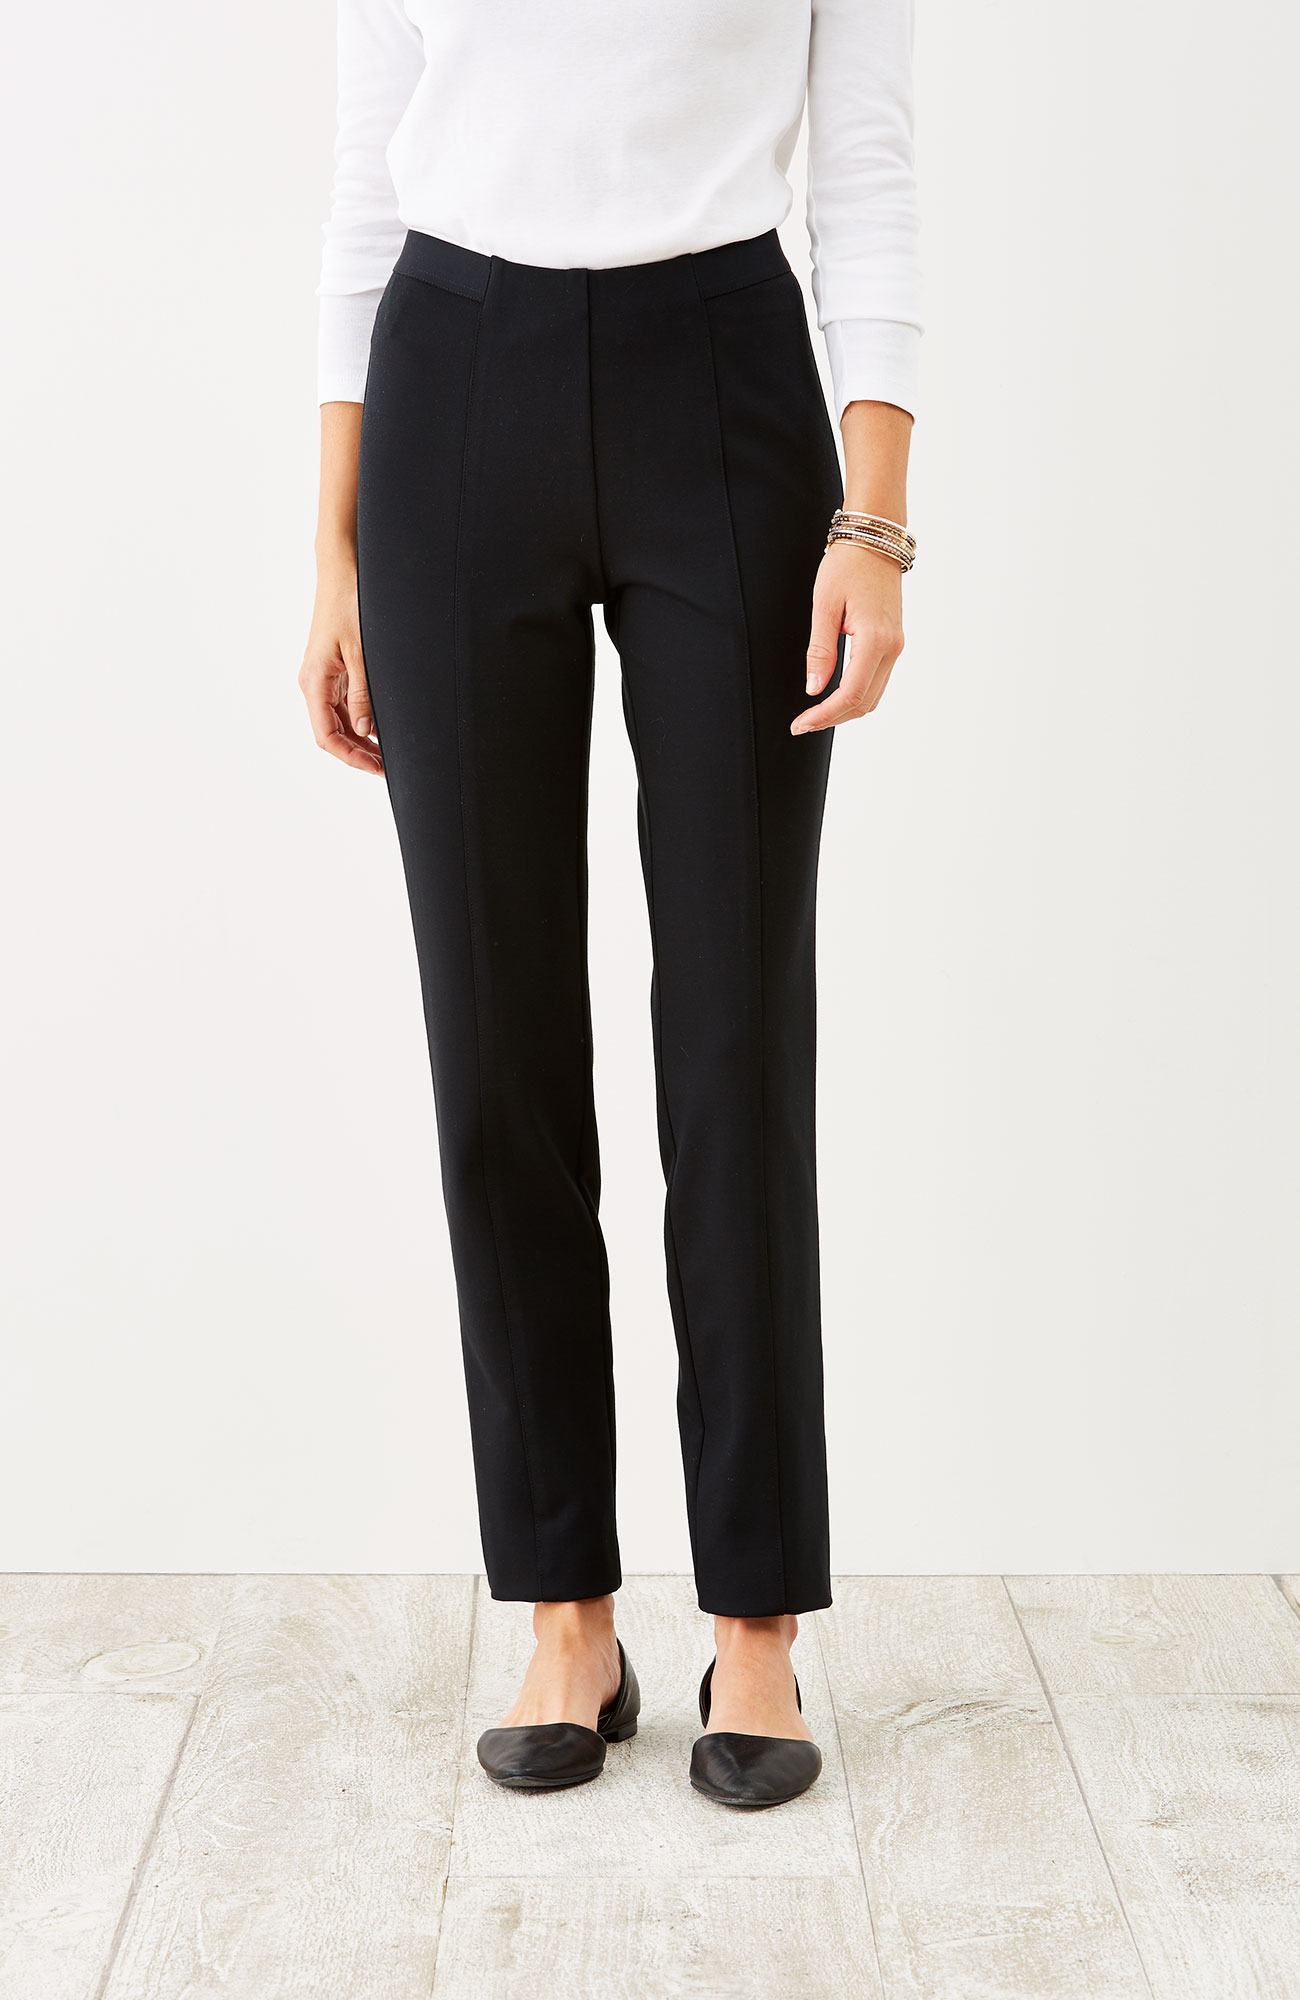 ponte knit seamed pants